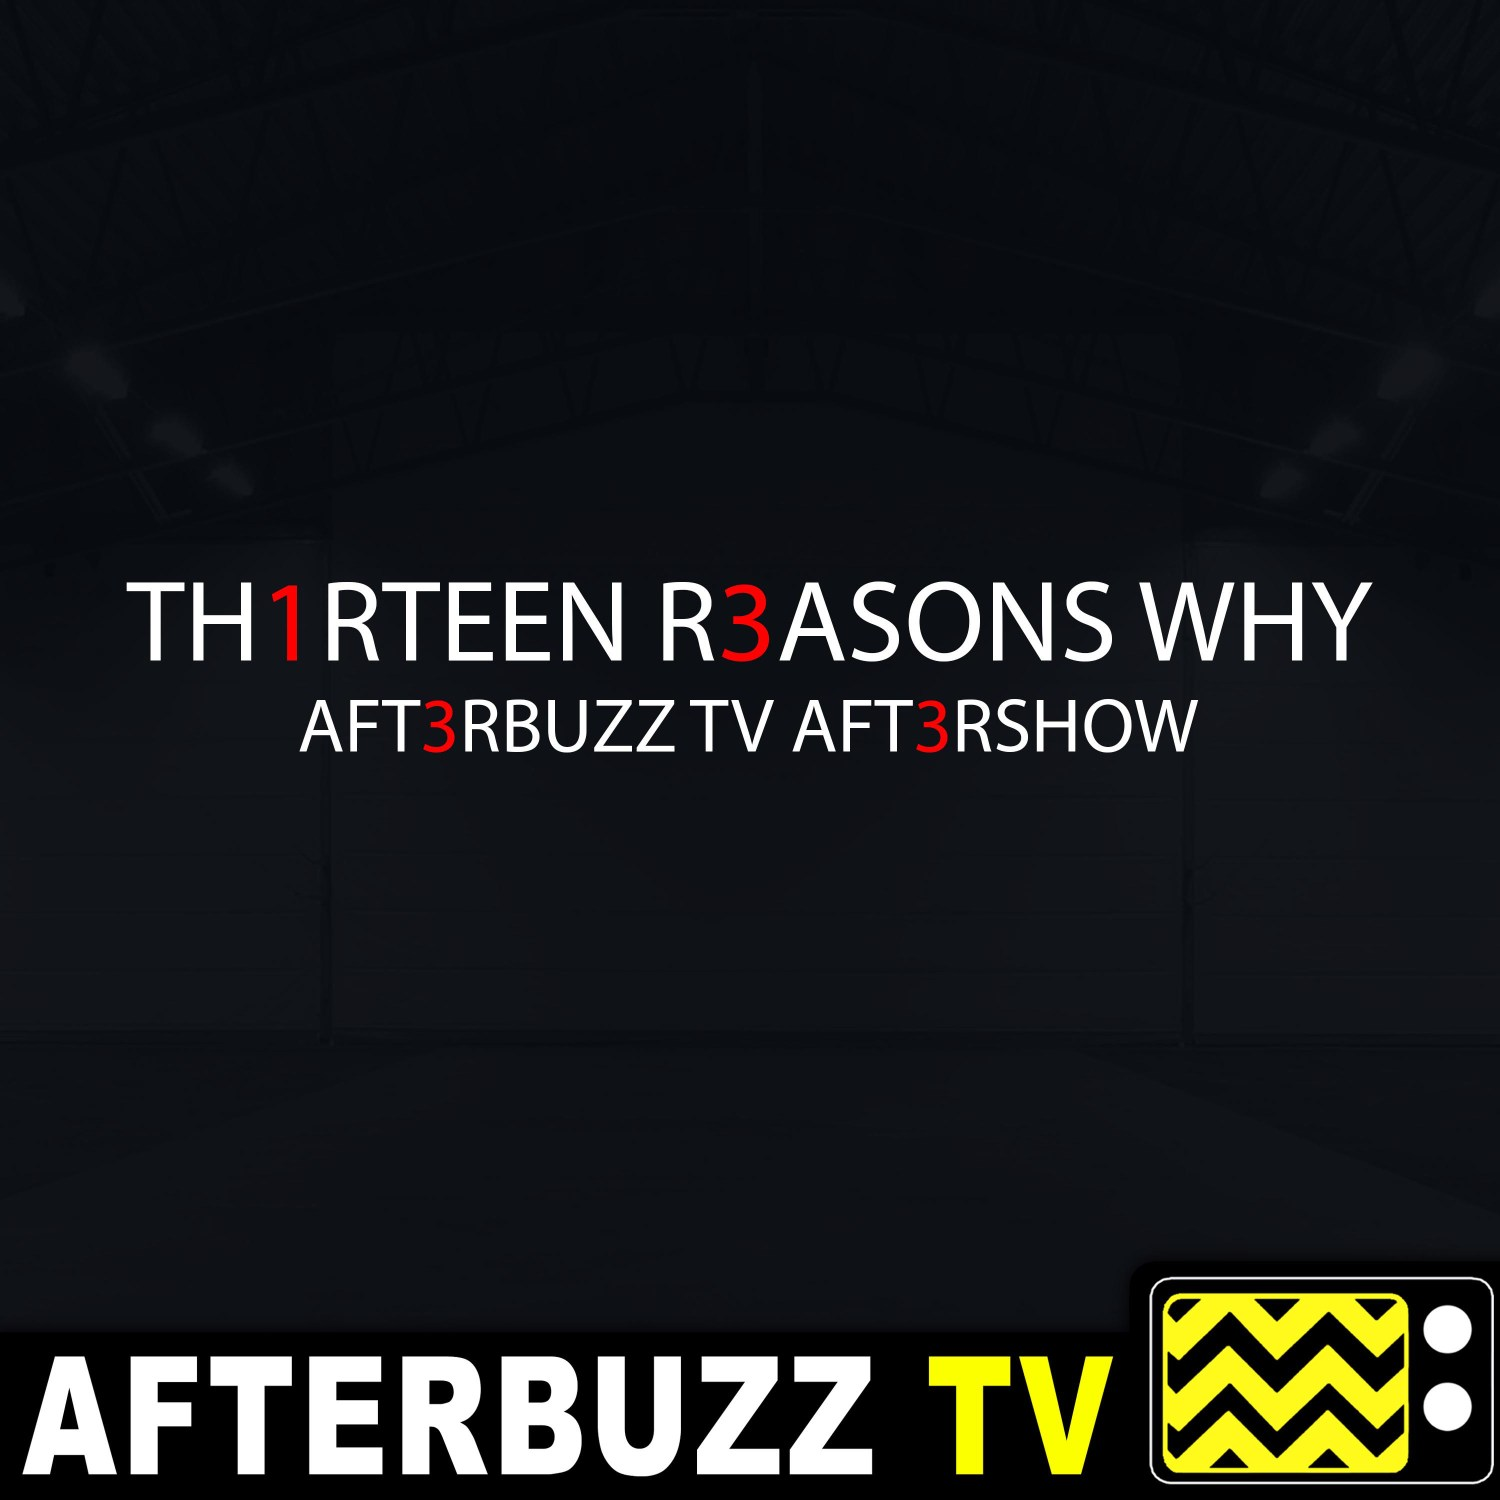 The 13 Reasons Why Podcast